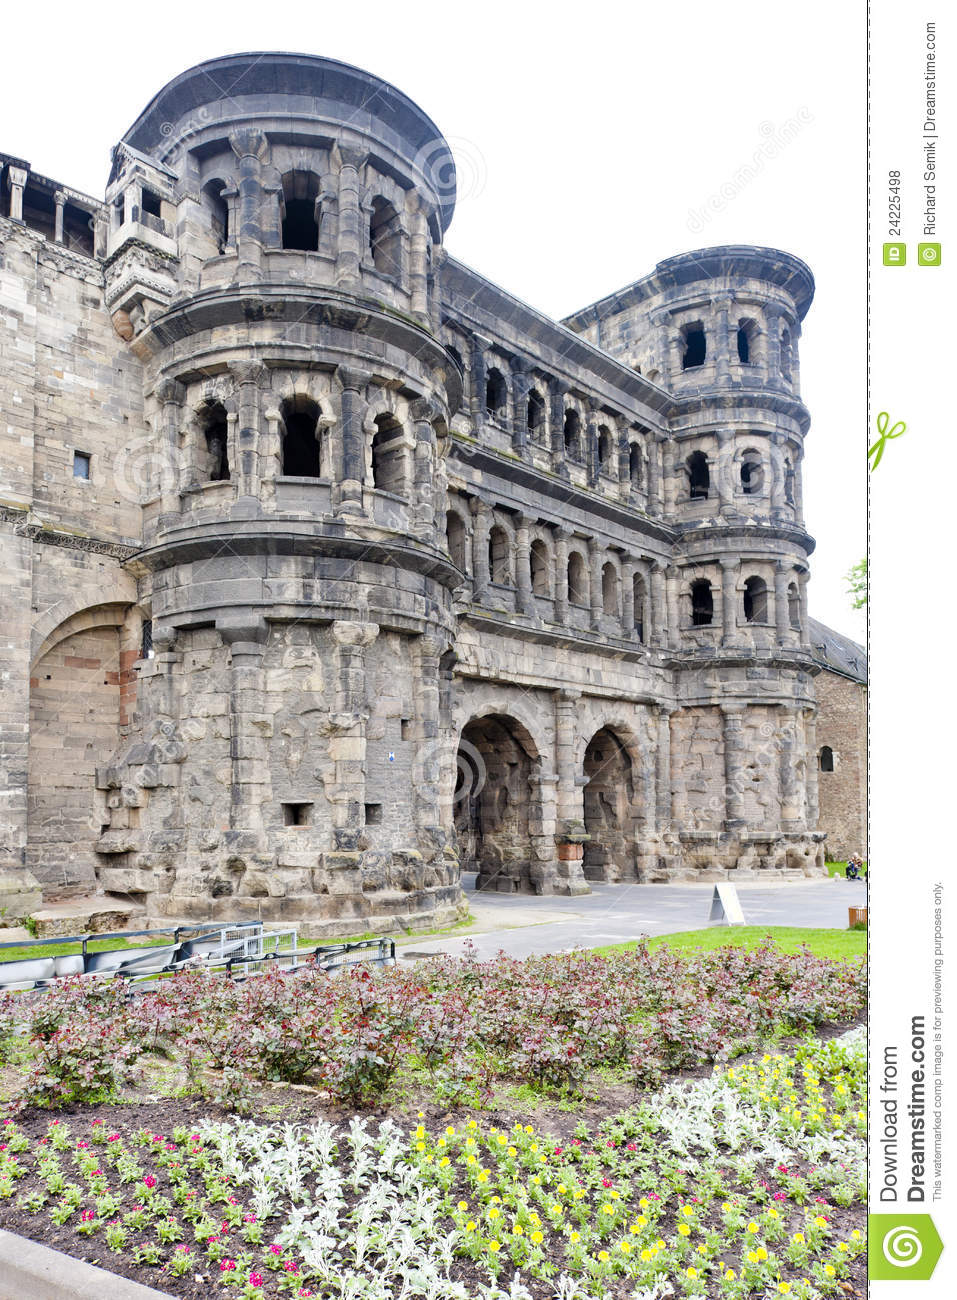 Trier Germany  city photos gallery : Trier, Germany Royalty Free Stock Photos Image: 24225498